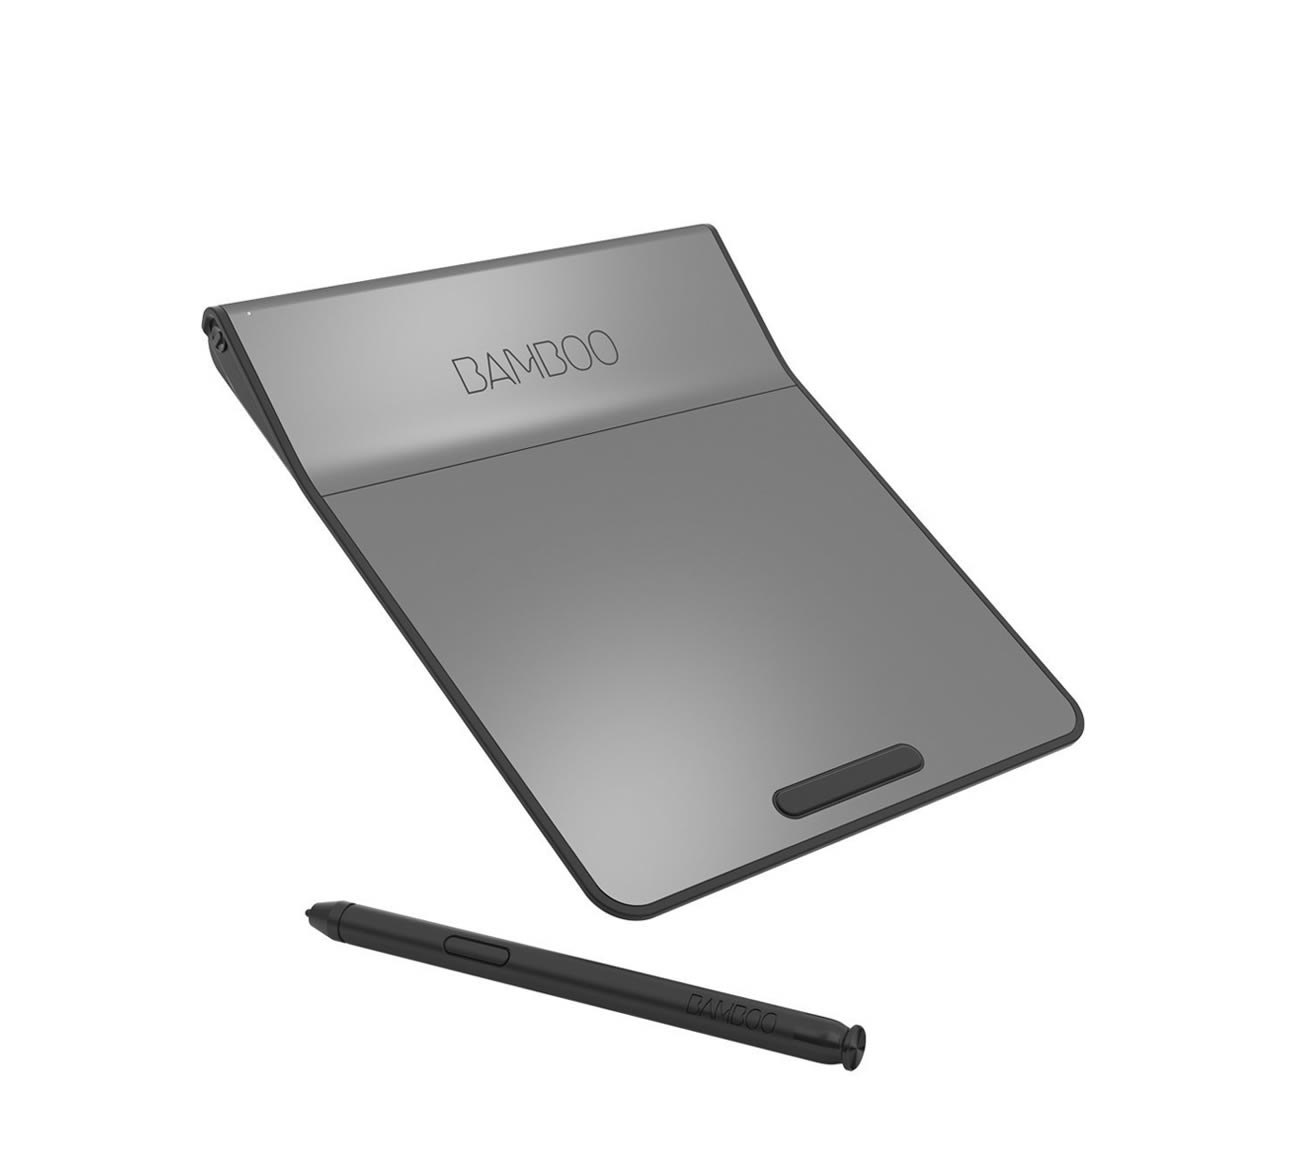 Win a Wireless Wacom Touchpad